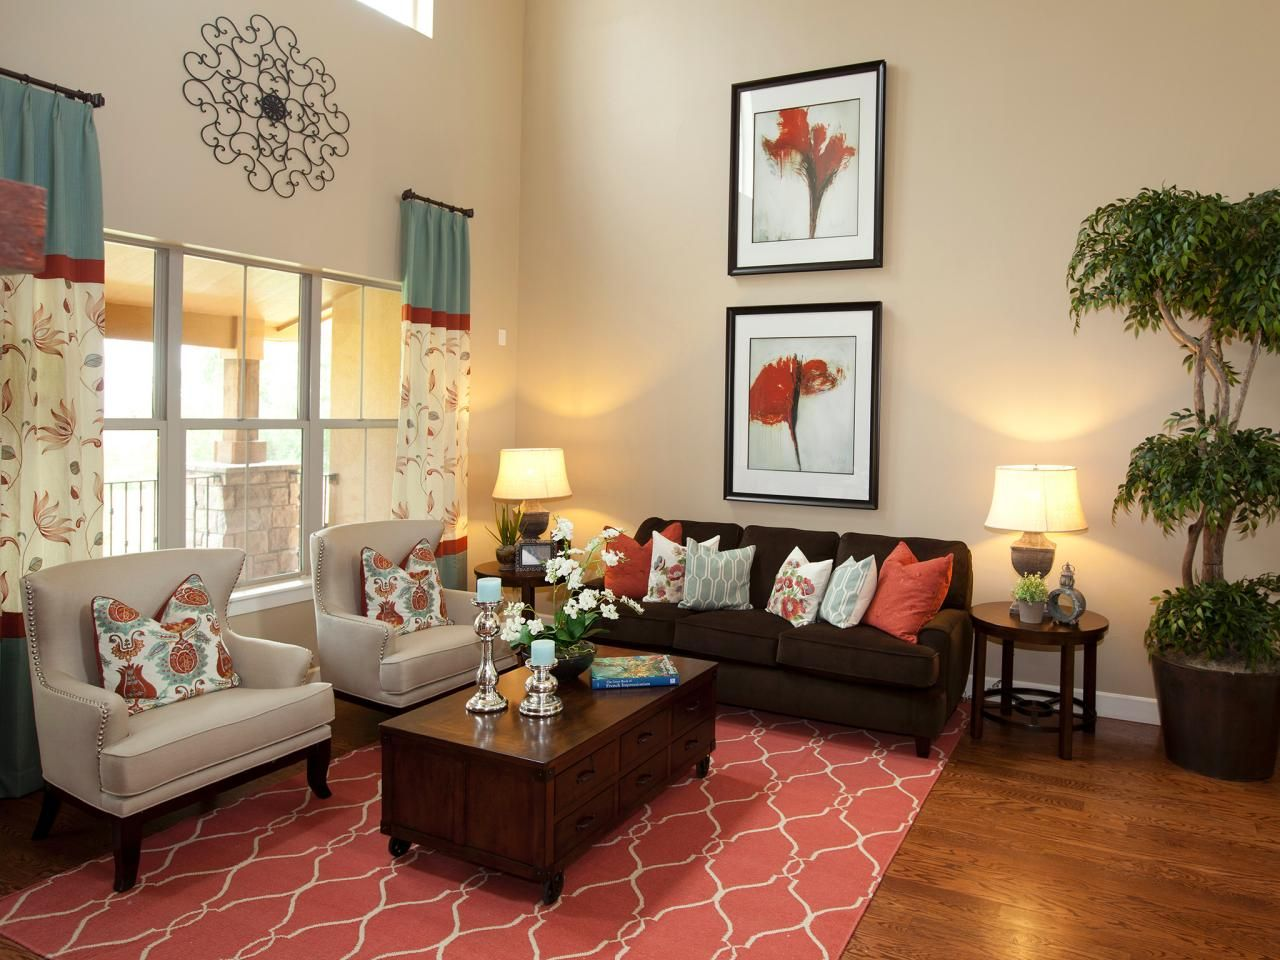 A coral colored rug pulls to her the design in this